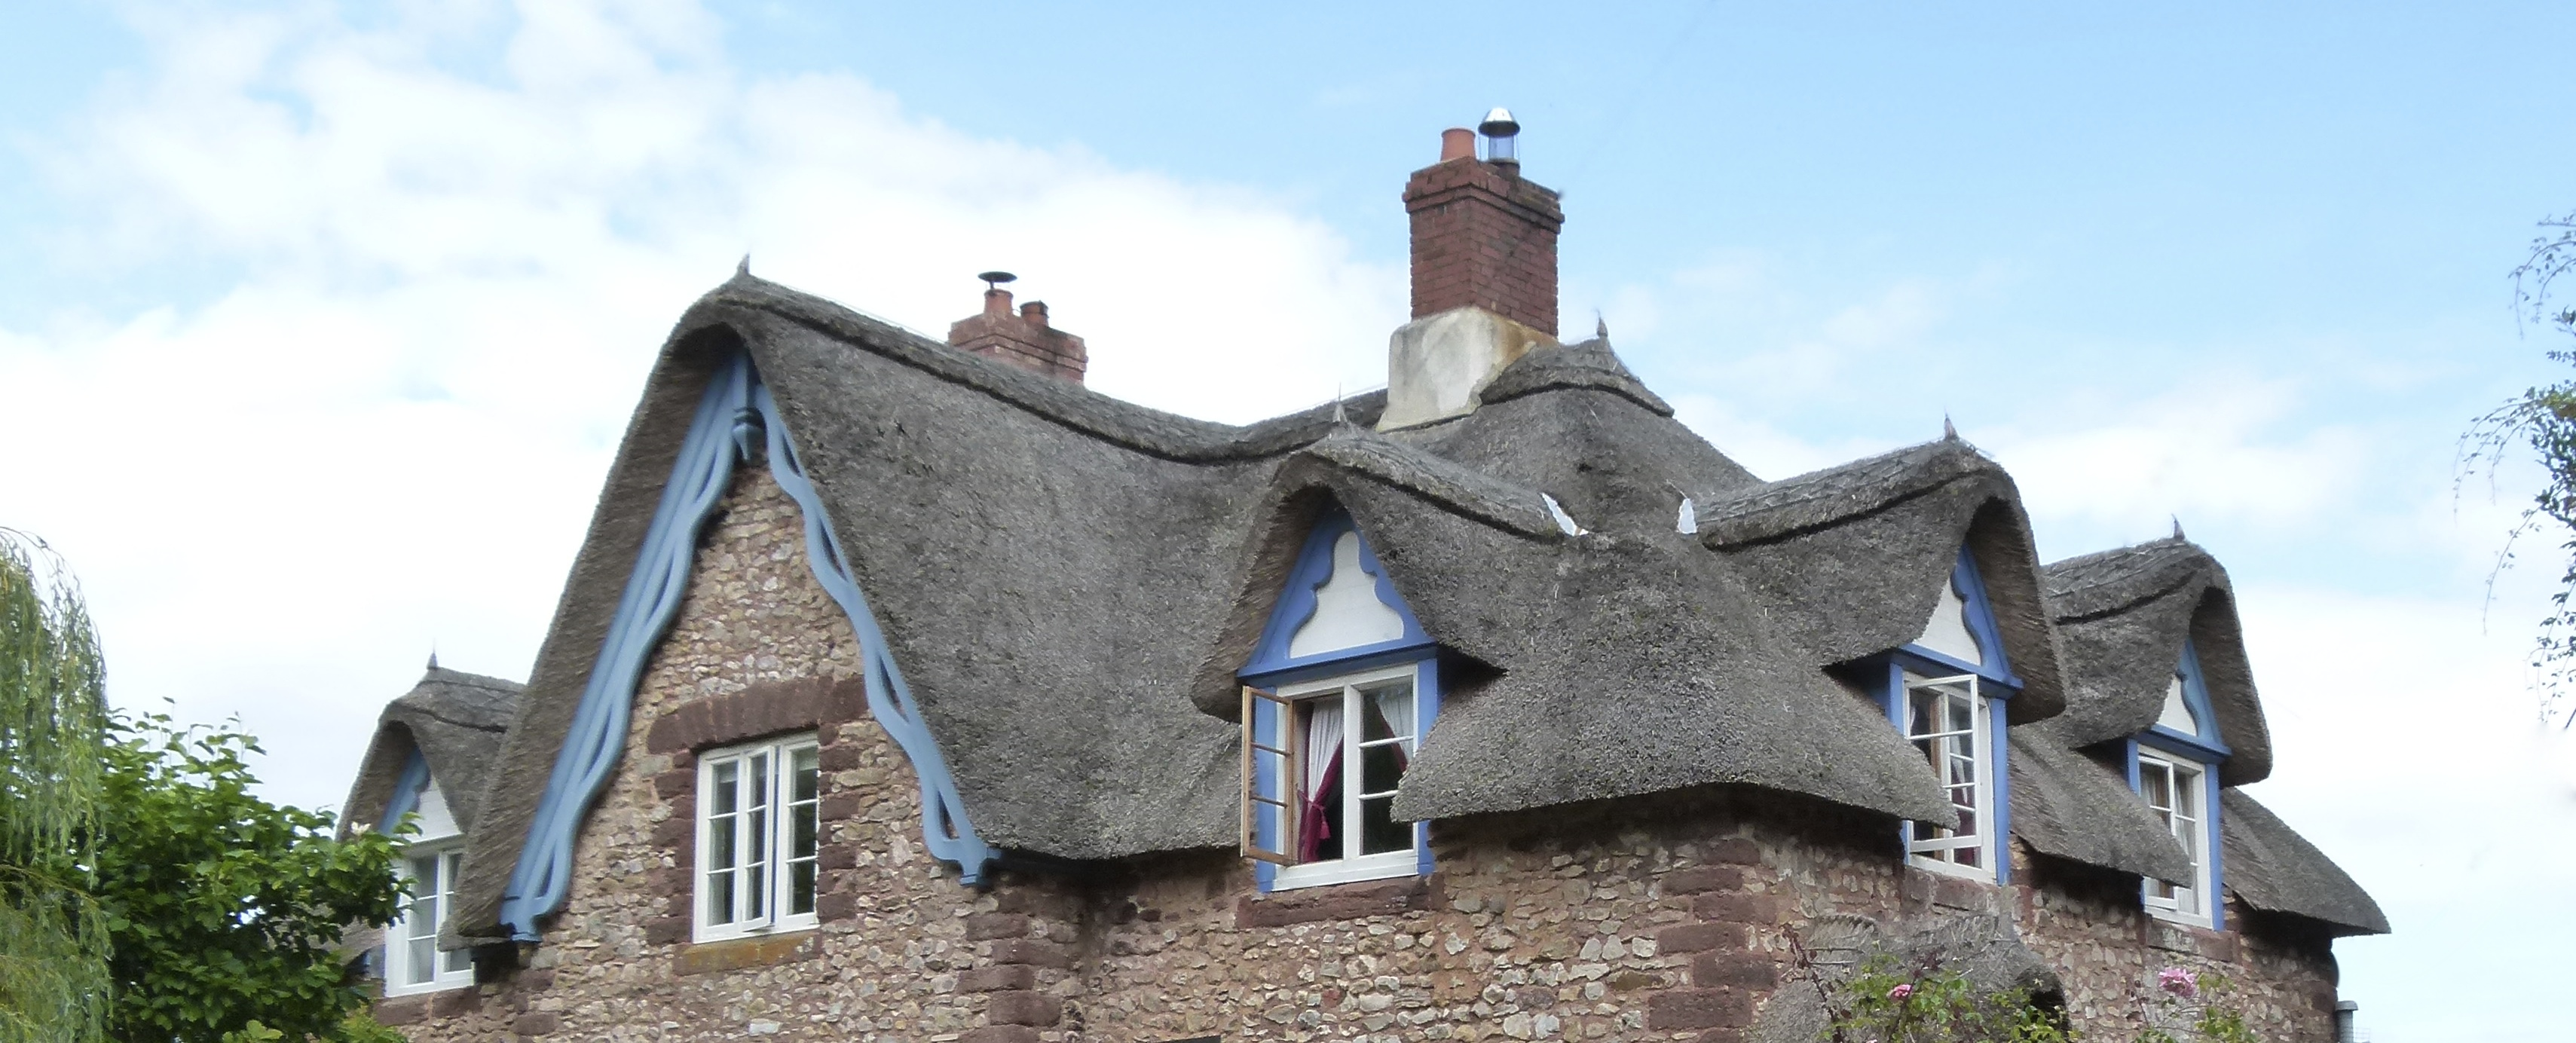 Thatch, dormers, replacement windows and barge boards all put back as original